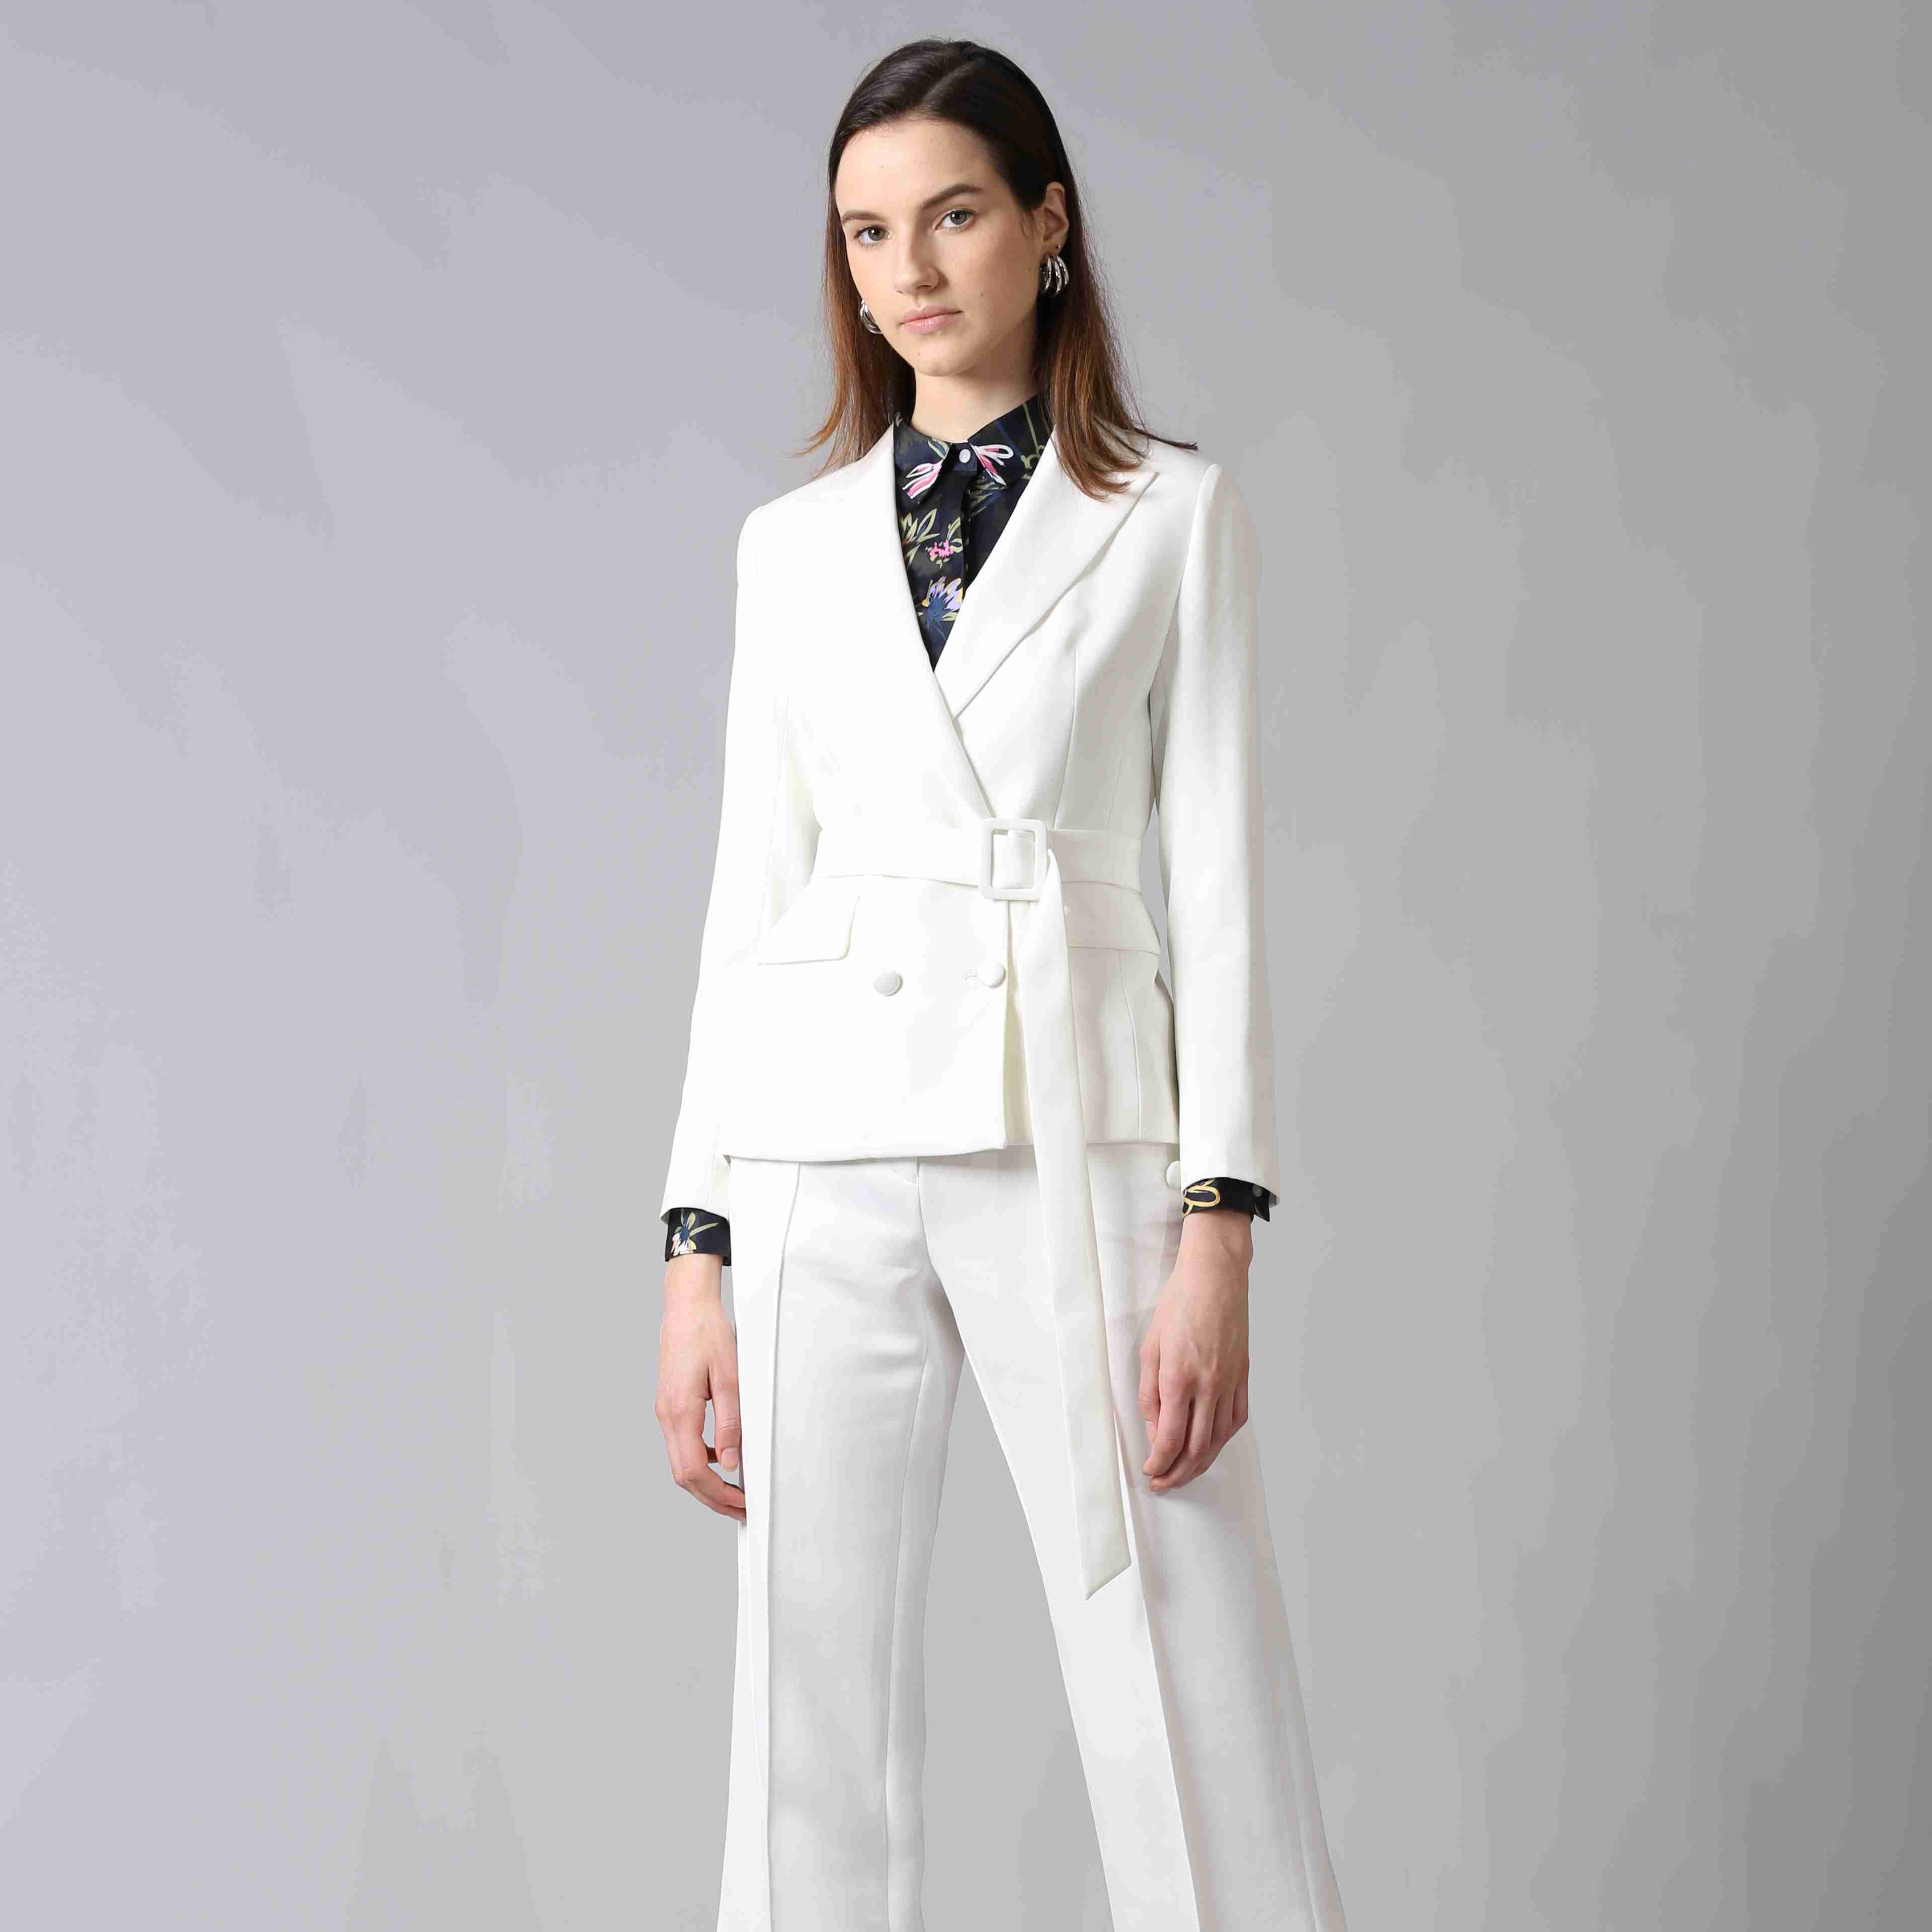 OEM Fashion female 2019 business suits for women famous brand suit Guangzhou manufacture